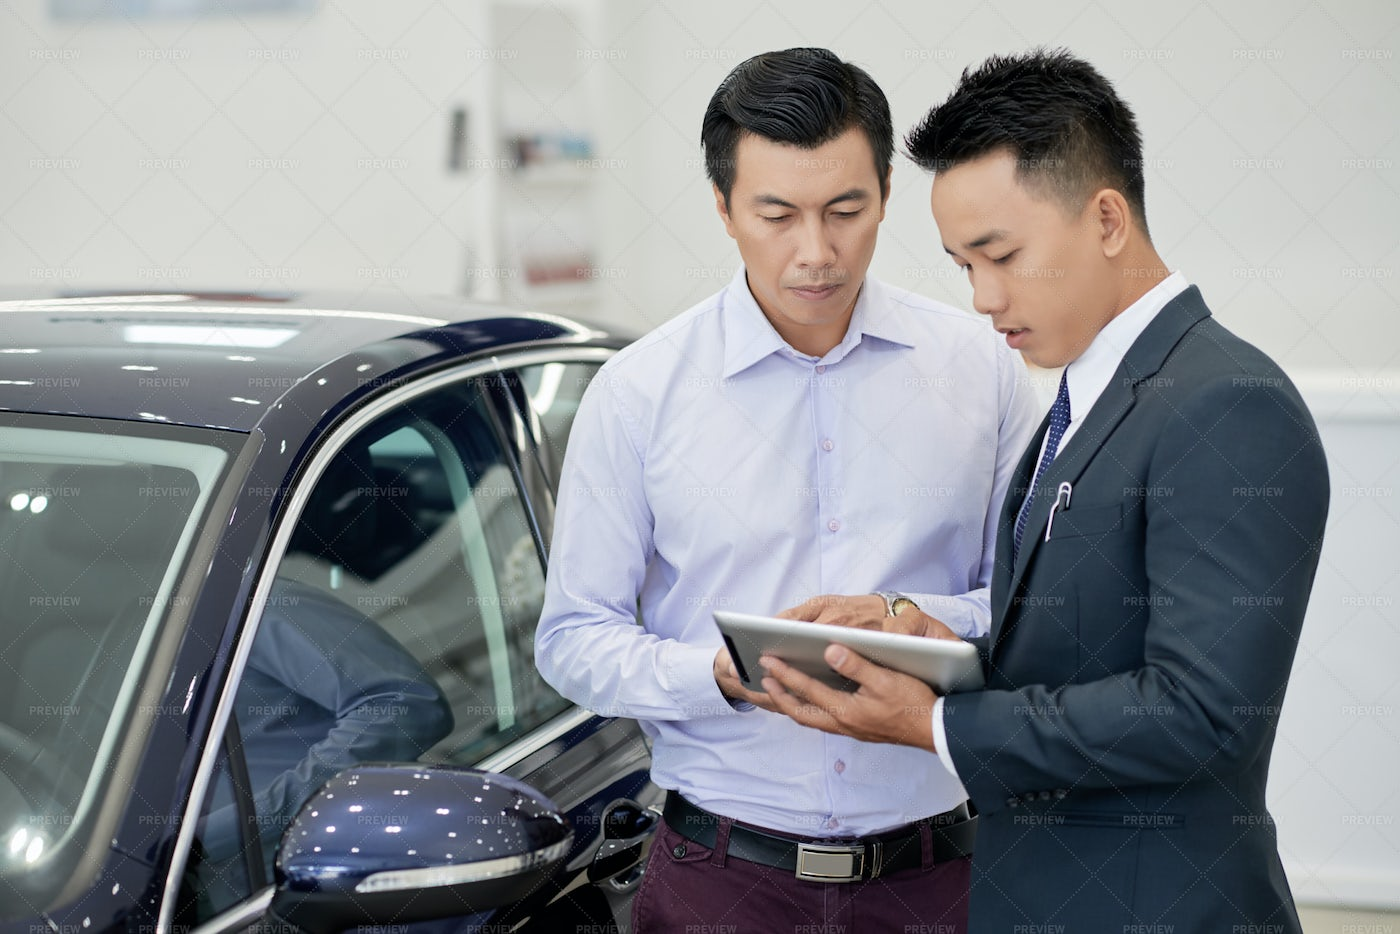 Car Dealership Manager Working With: Stock Photos